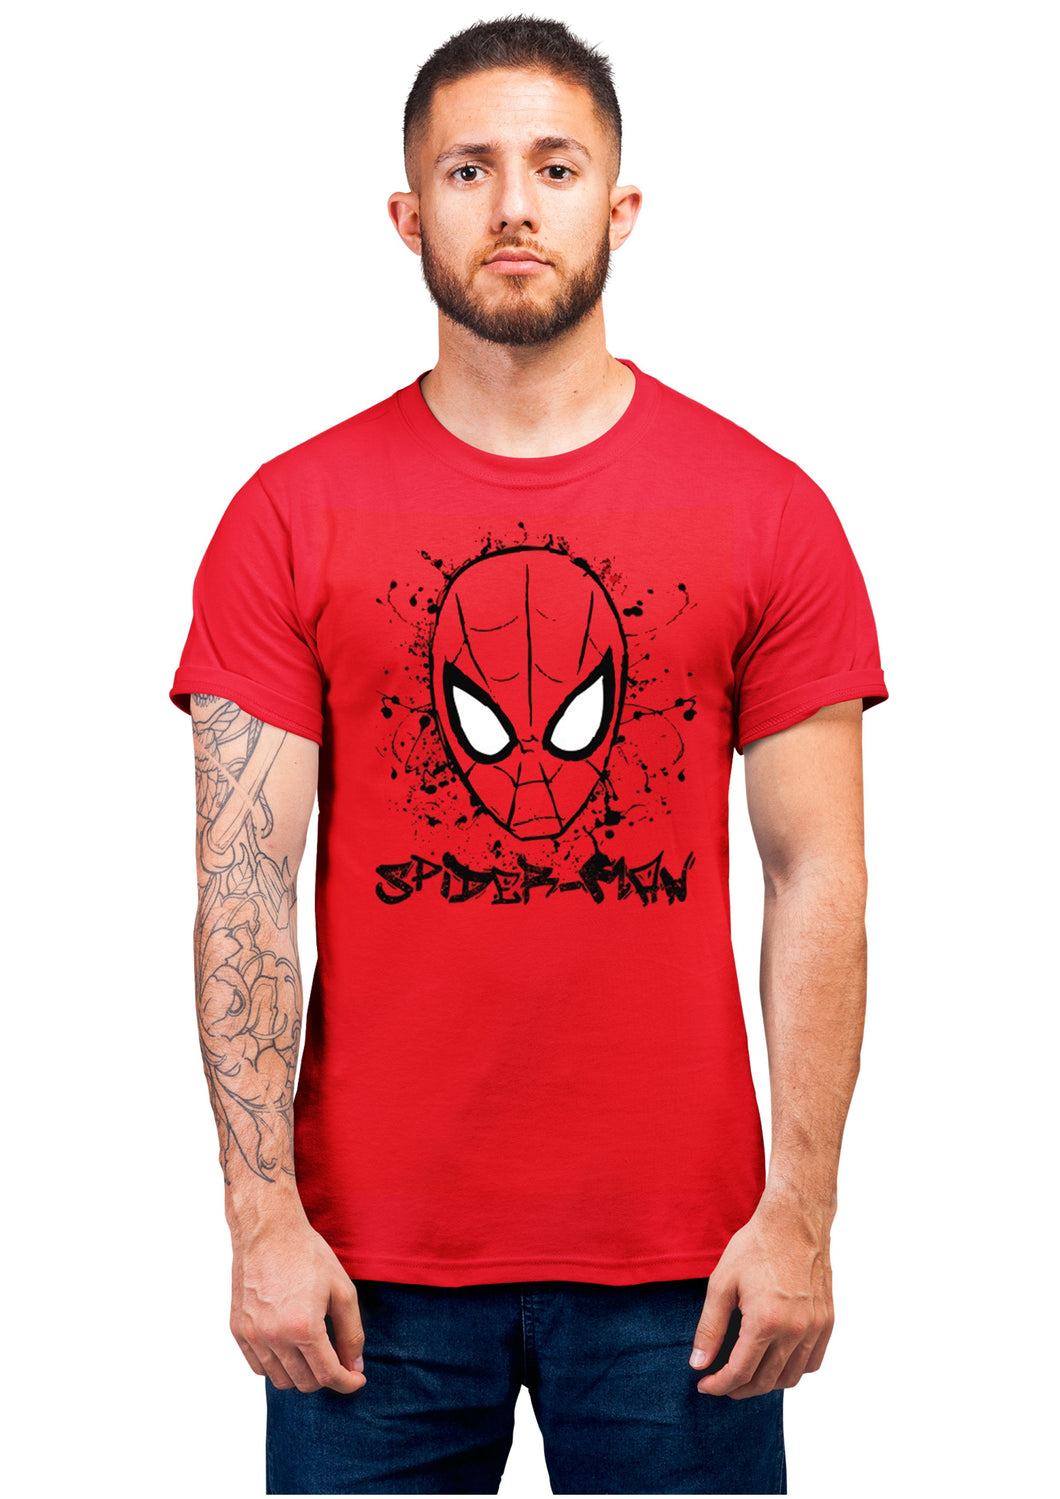 Spiderman2 Half Sleeve Red